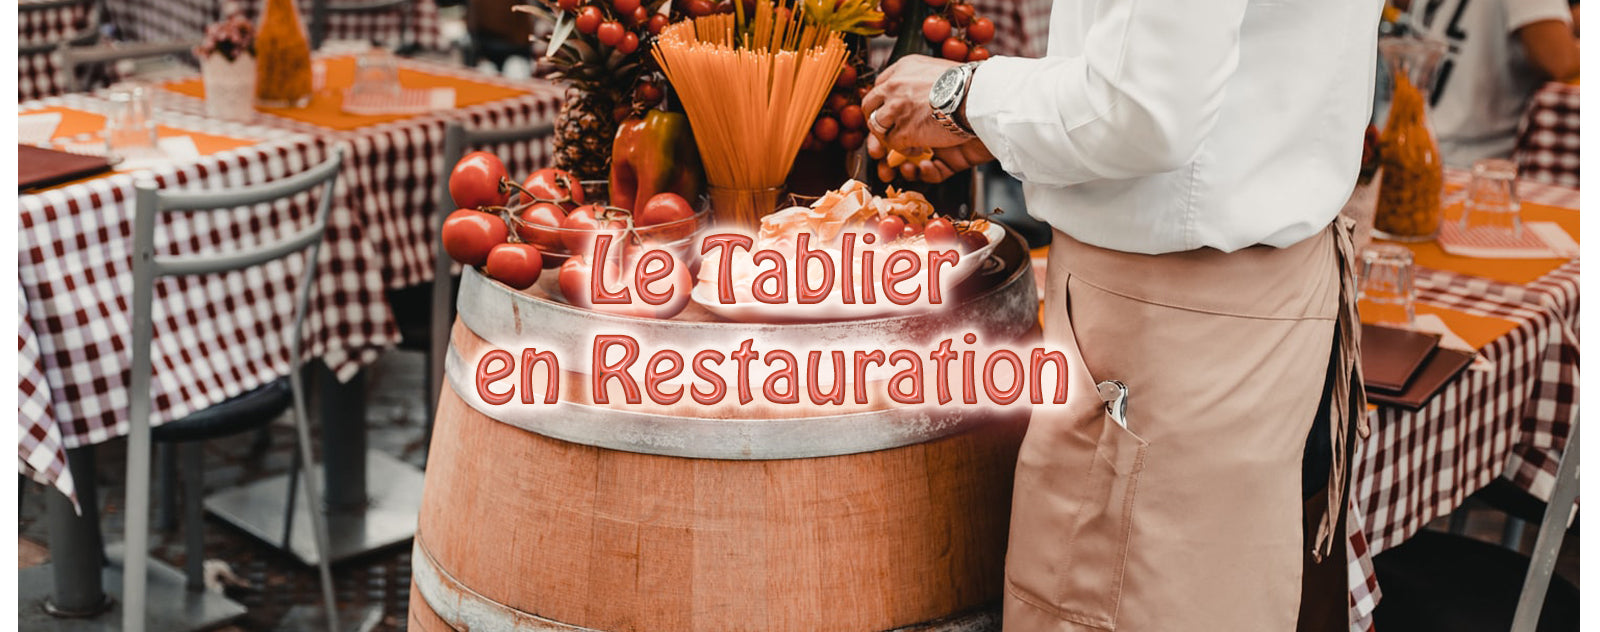 Le Tablier en Restauration